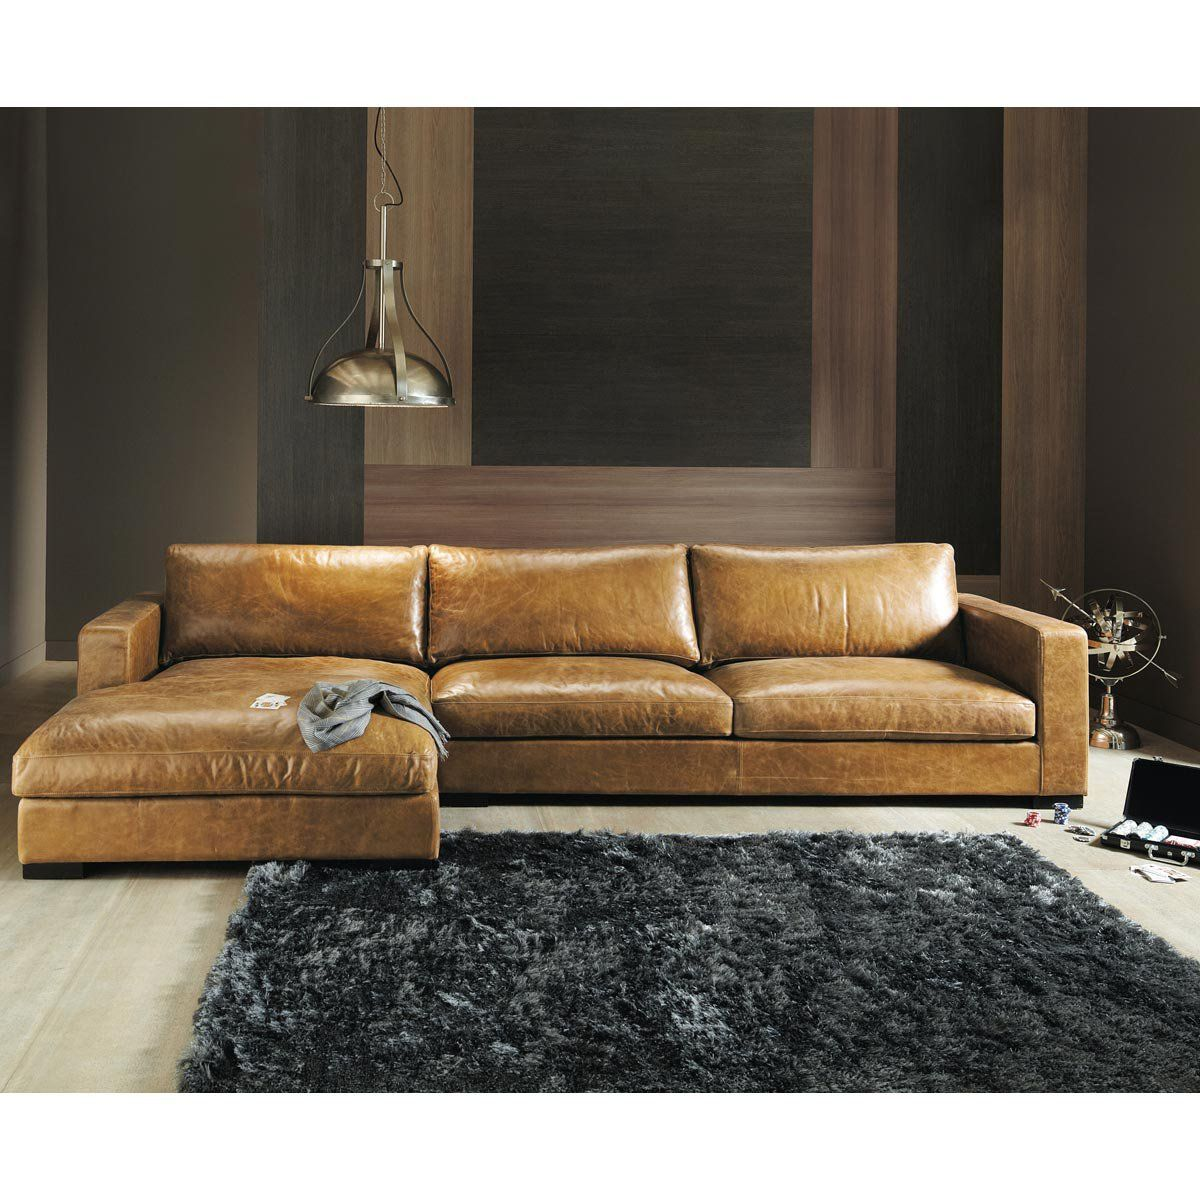 brown color leather sofa 2 seater bed brisbane vintage sectional corner seats 3 4